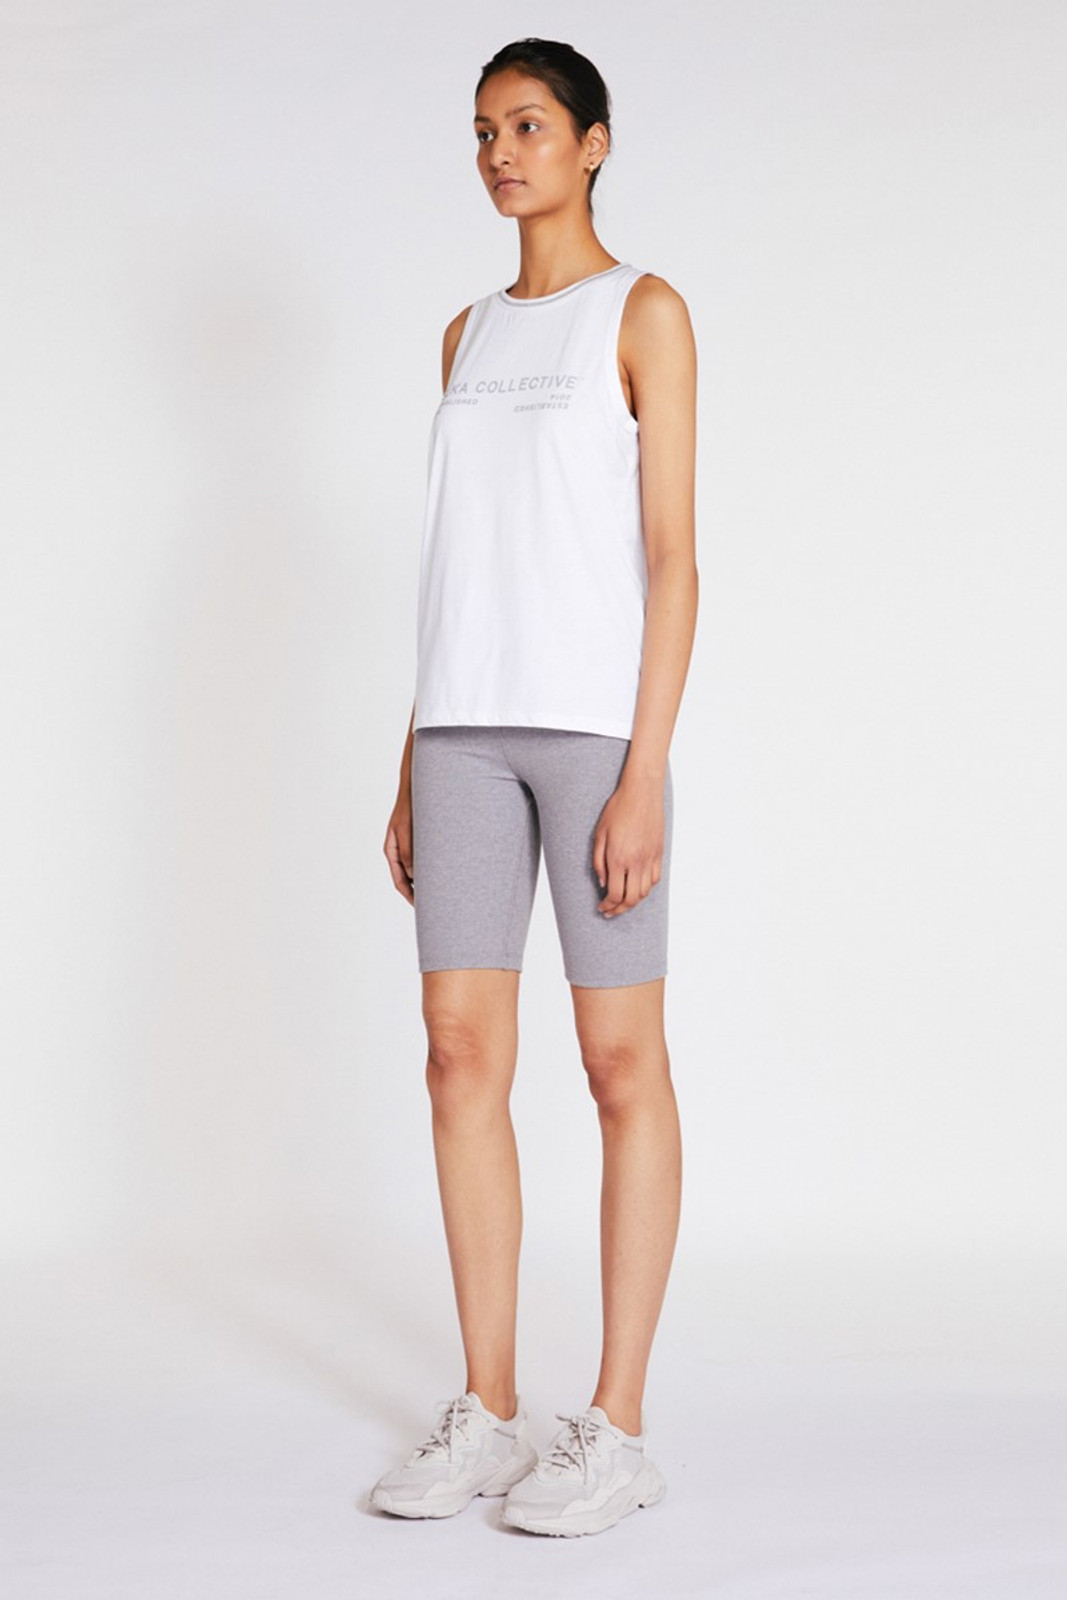 Elka Collective Racer Tank White  0